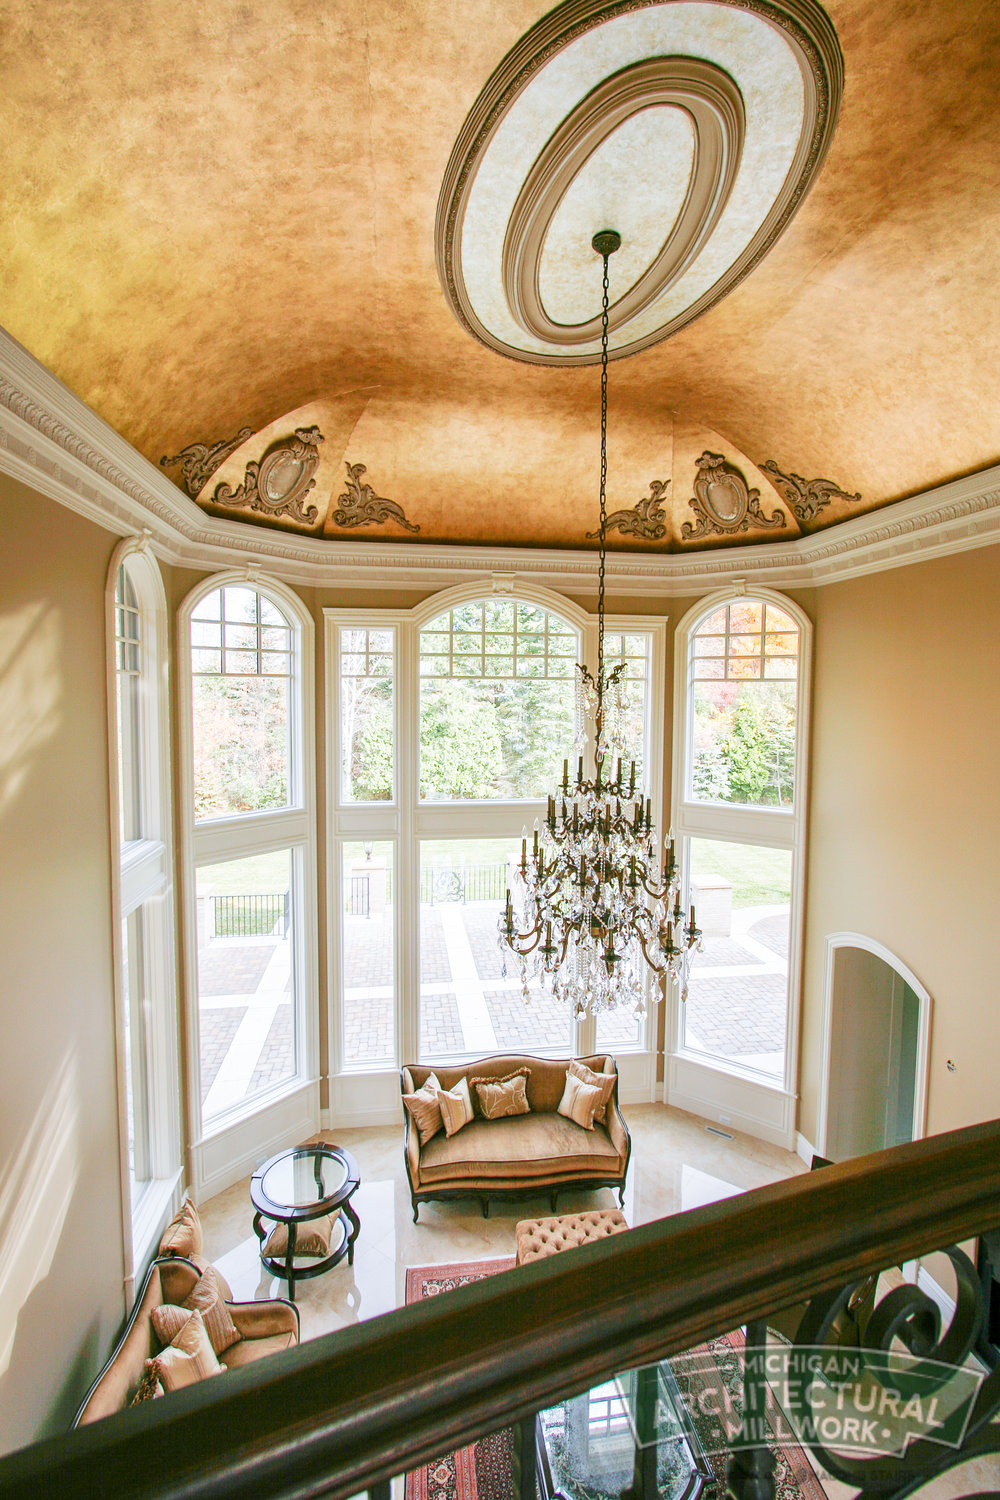 Michigan Architectural Millwork- Moulding and Millwork Photo-217.jpg